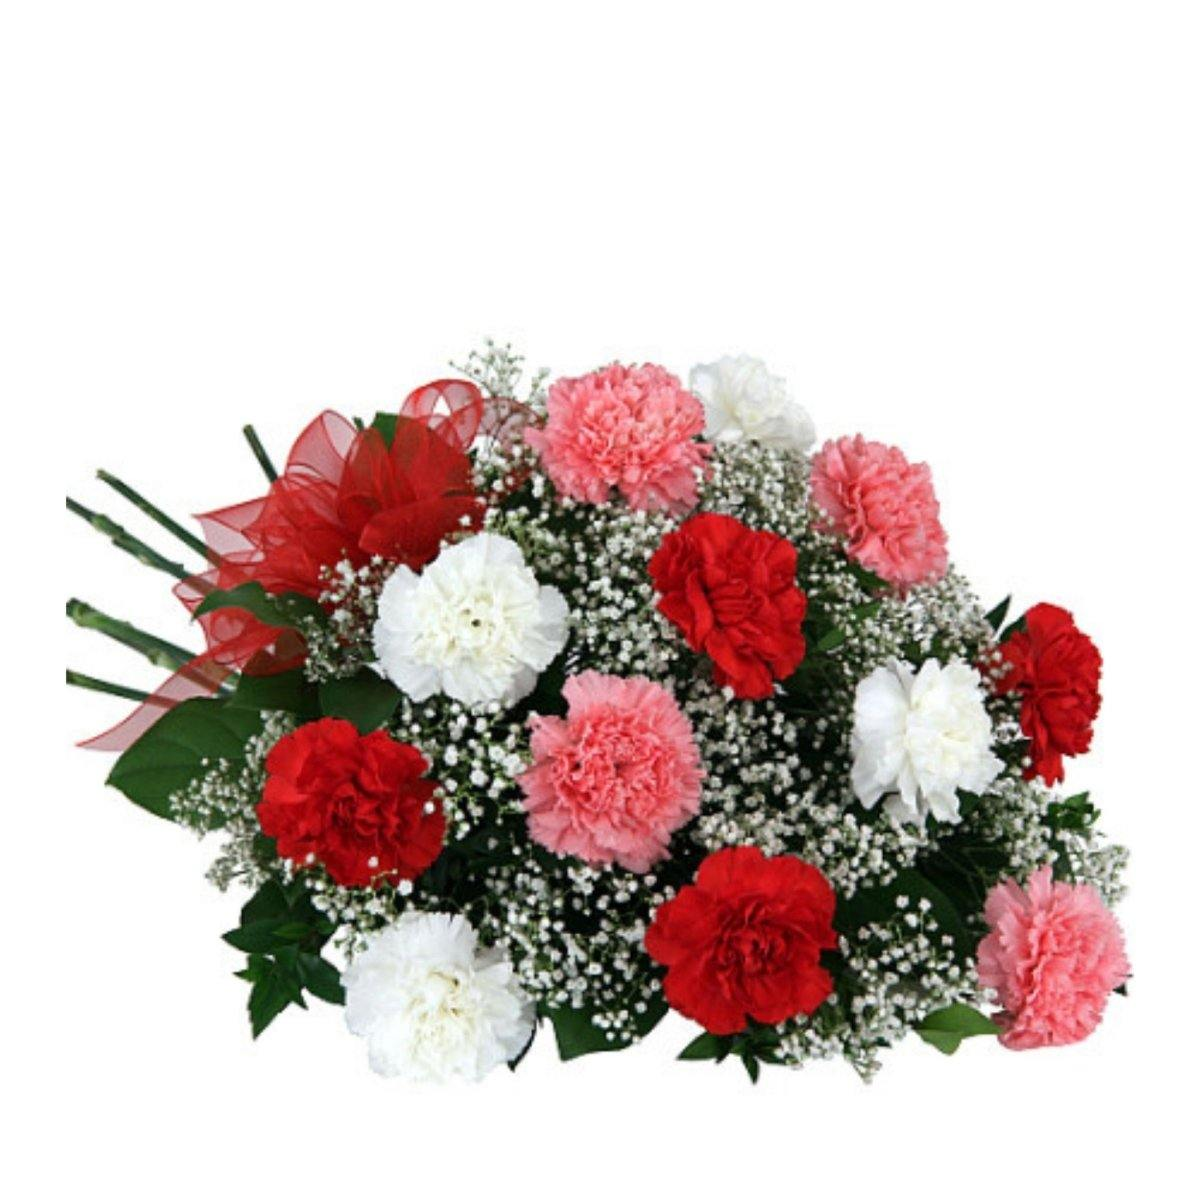 Carnation Trio Bouquet 19 - Shalimar Flower Shop